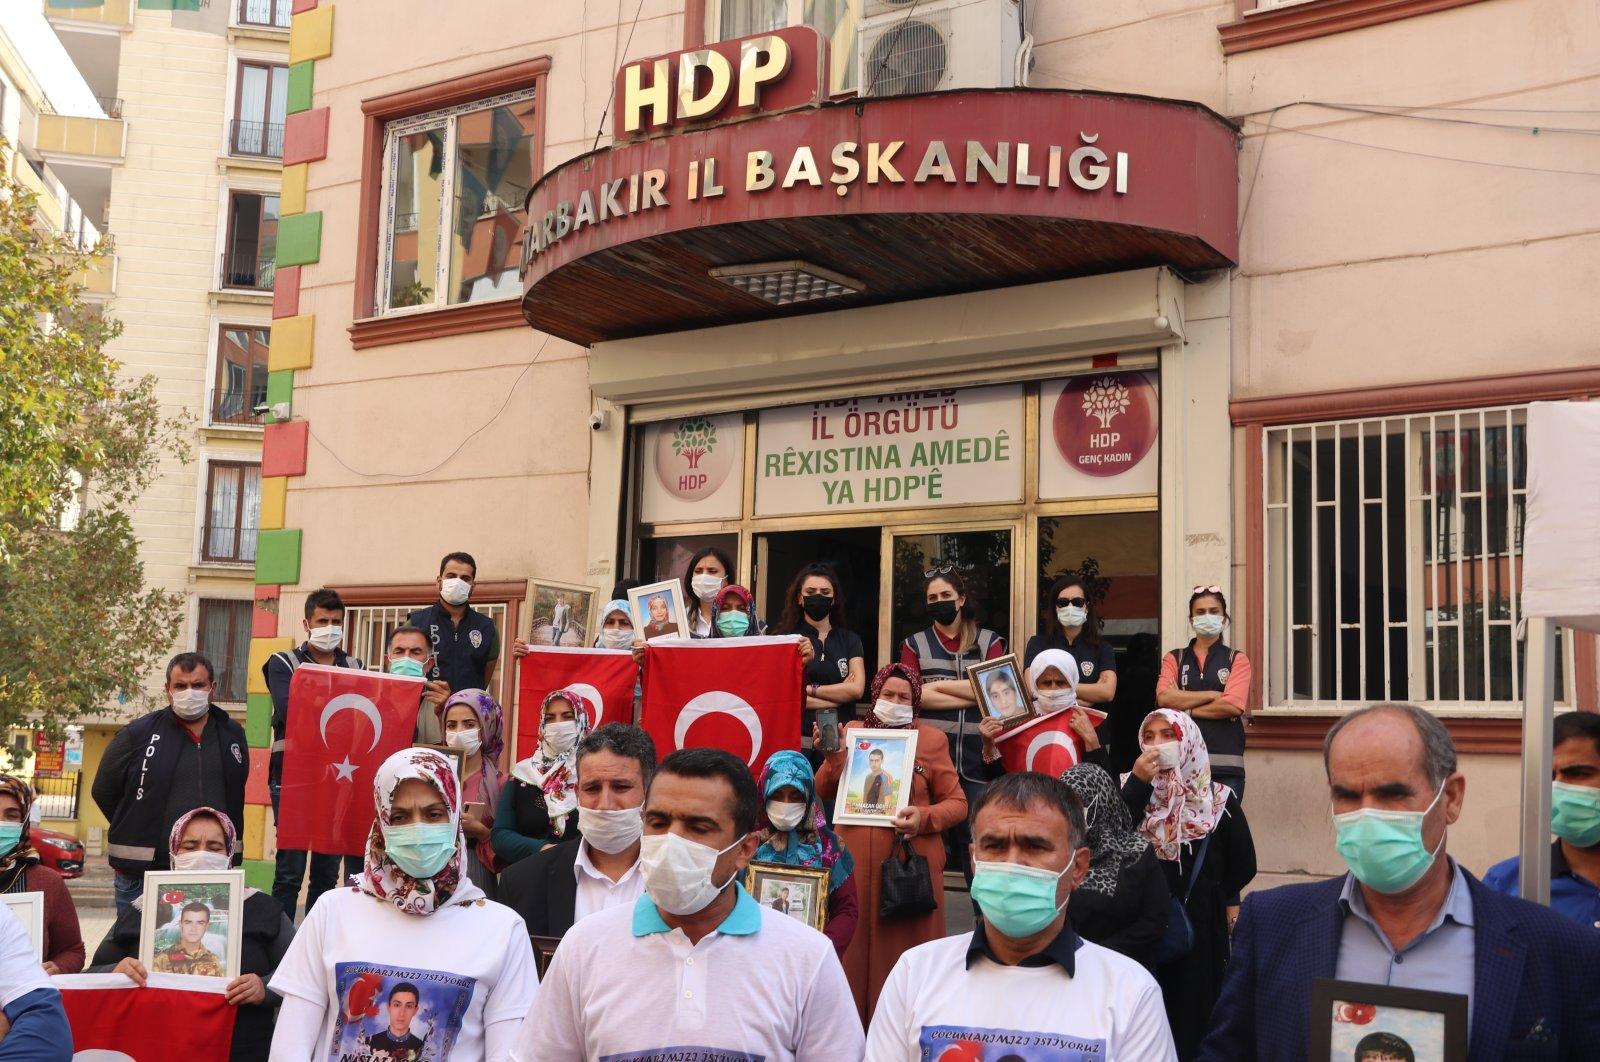 Families protesting in front of the pro-PKK Peoples' Democratic Party (HDP) in Diyarbakır province, criticized the party's lawmaker Meral Danış Beştaş for supporting the PKK on Oct. 25, 2020. (AA Photo)